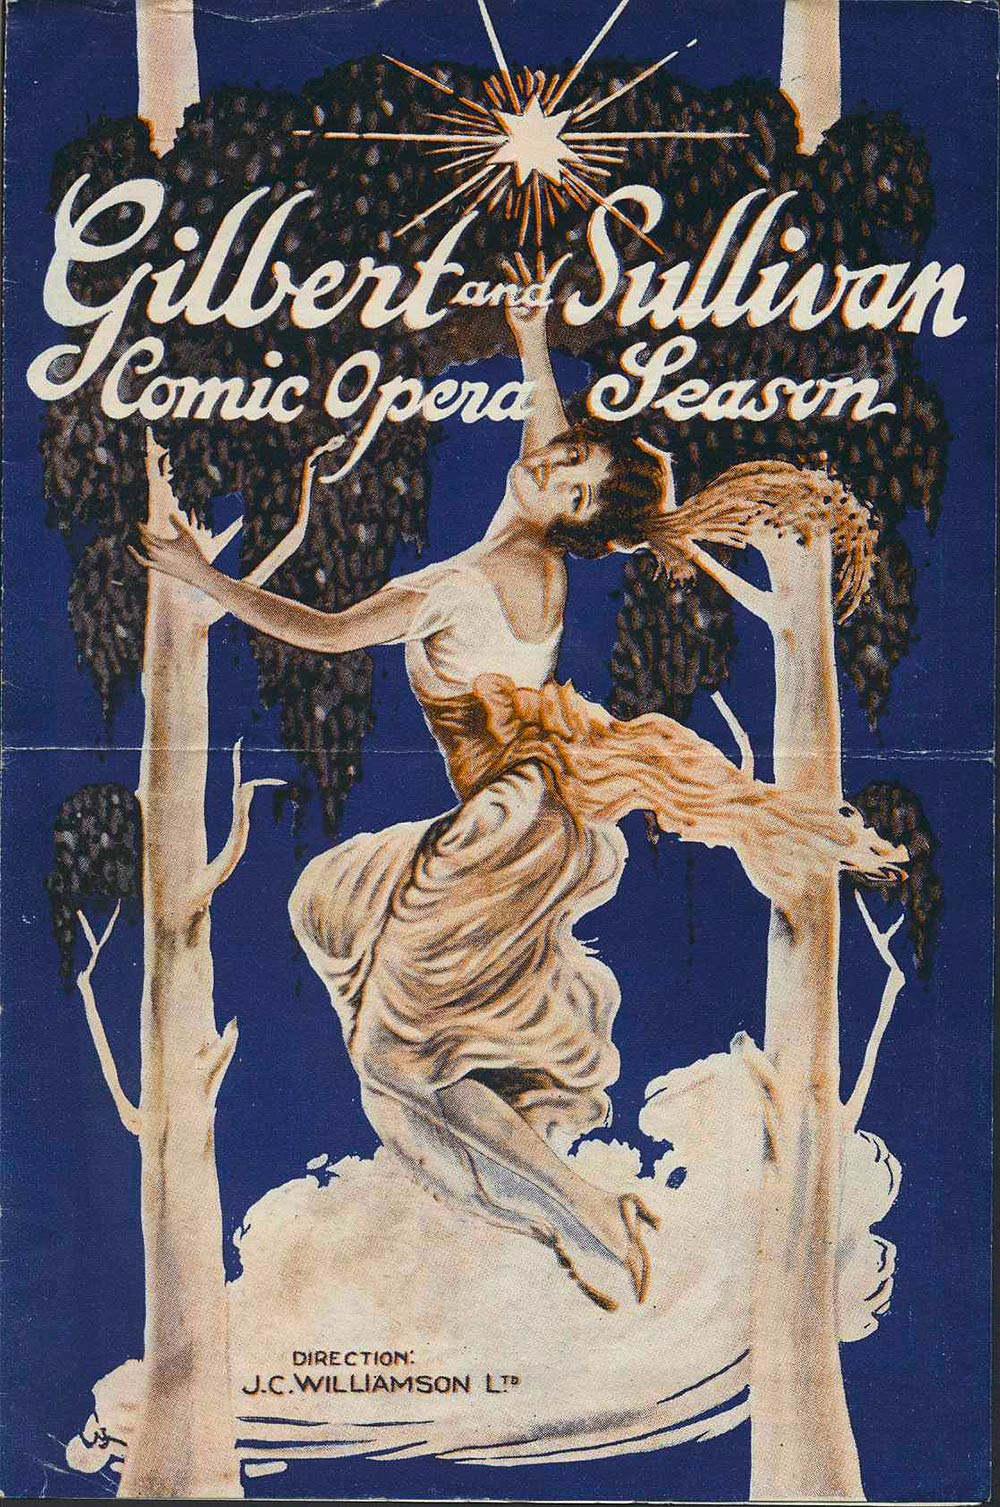 <em>Gilbert and Sullivan Comic Opera Season</em>. (J.C. Williamson Ltd.). 1927.